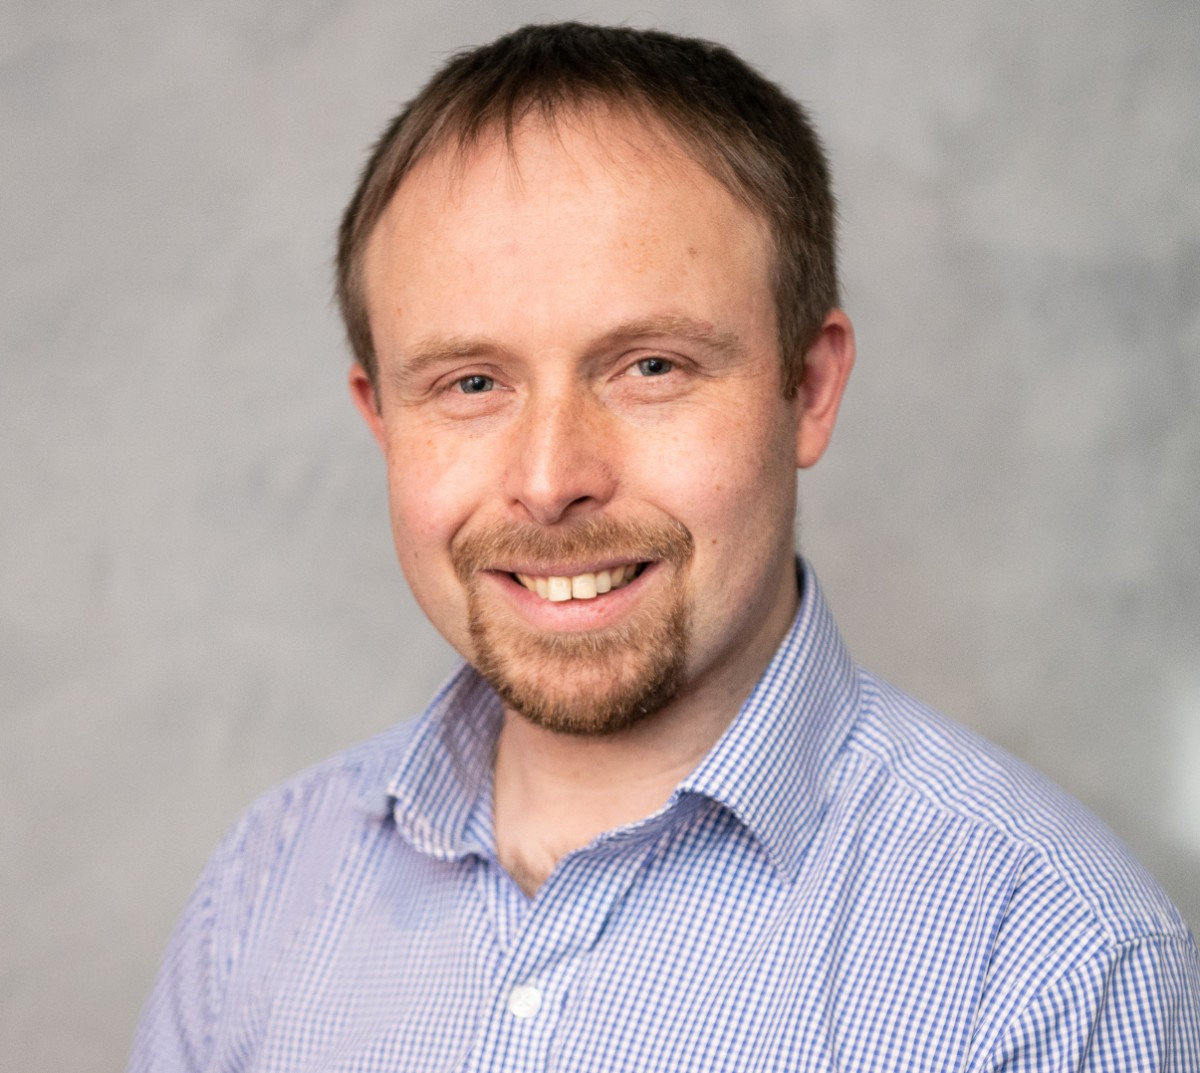 New appointment of Business Development Manager, Simon Morris